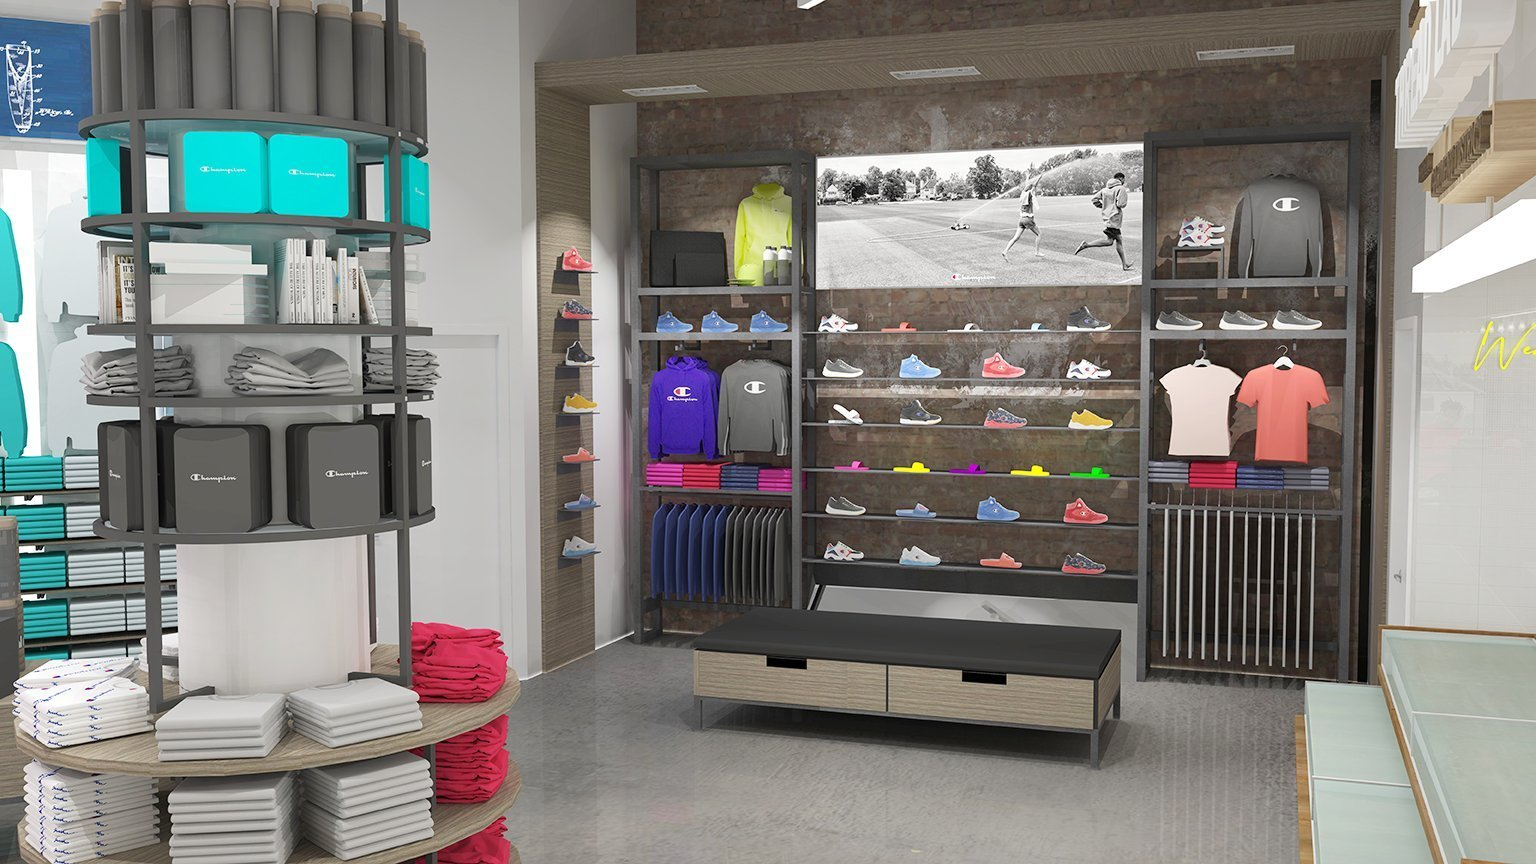 The footwear wall also features an illuminated graphic and more general apparel on a metal framed retail fixture against a distressed brick wall.